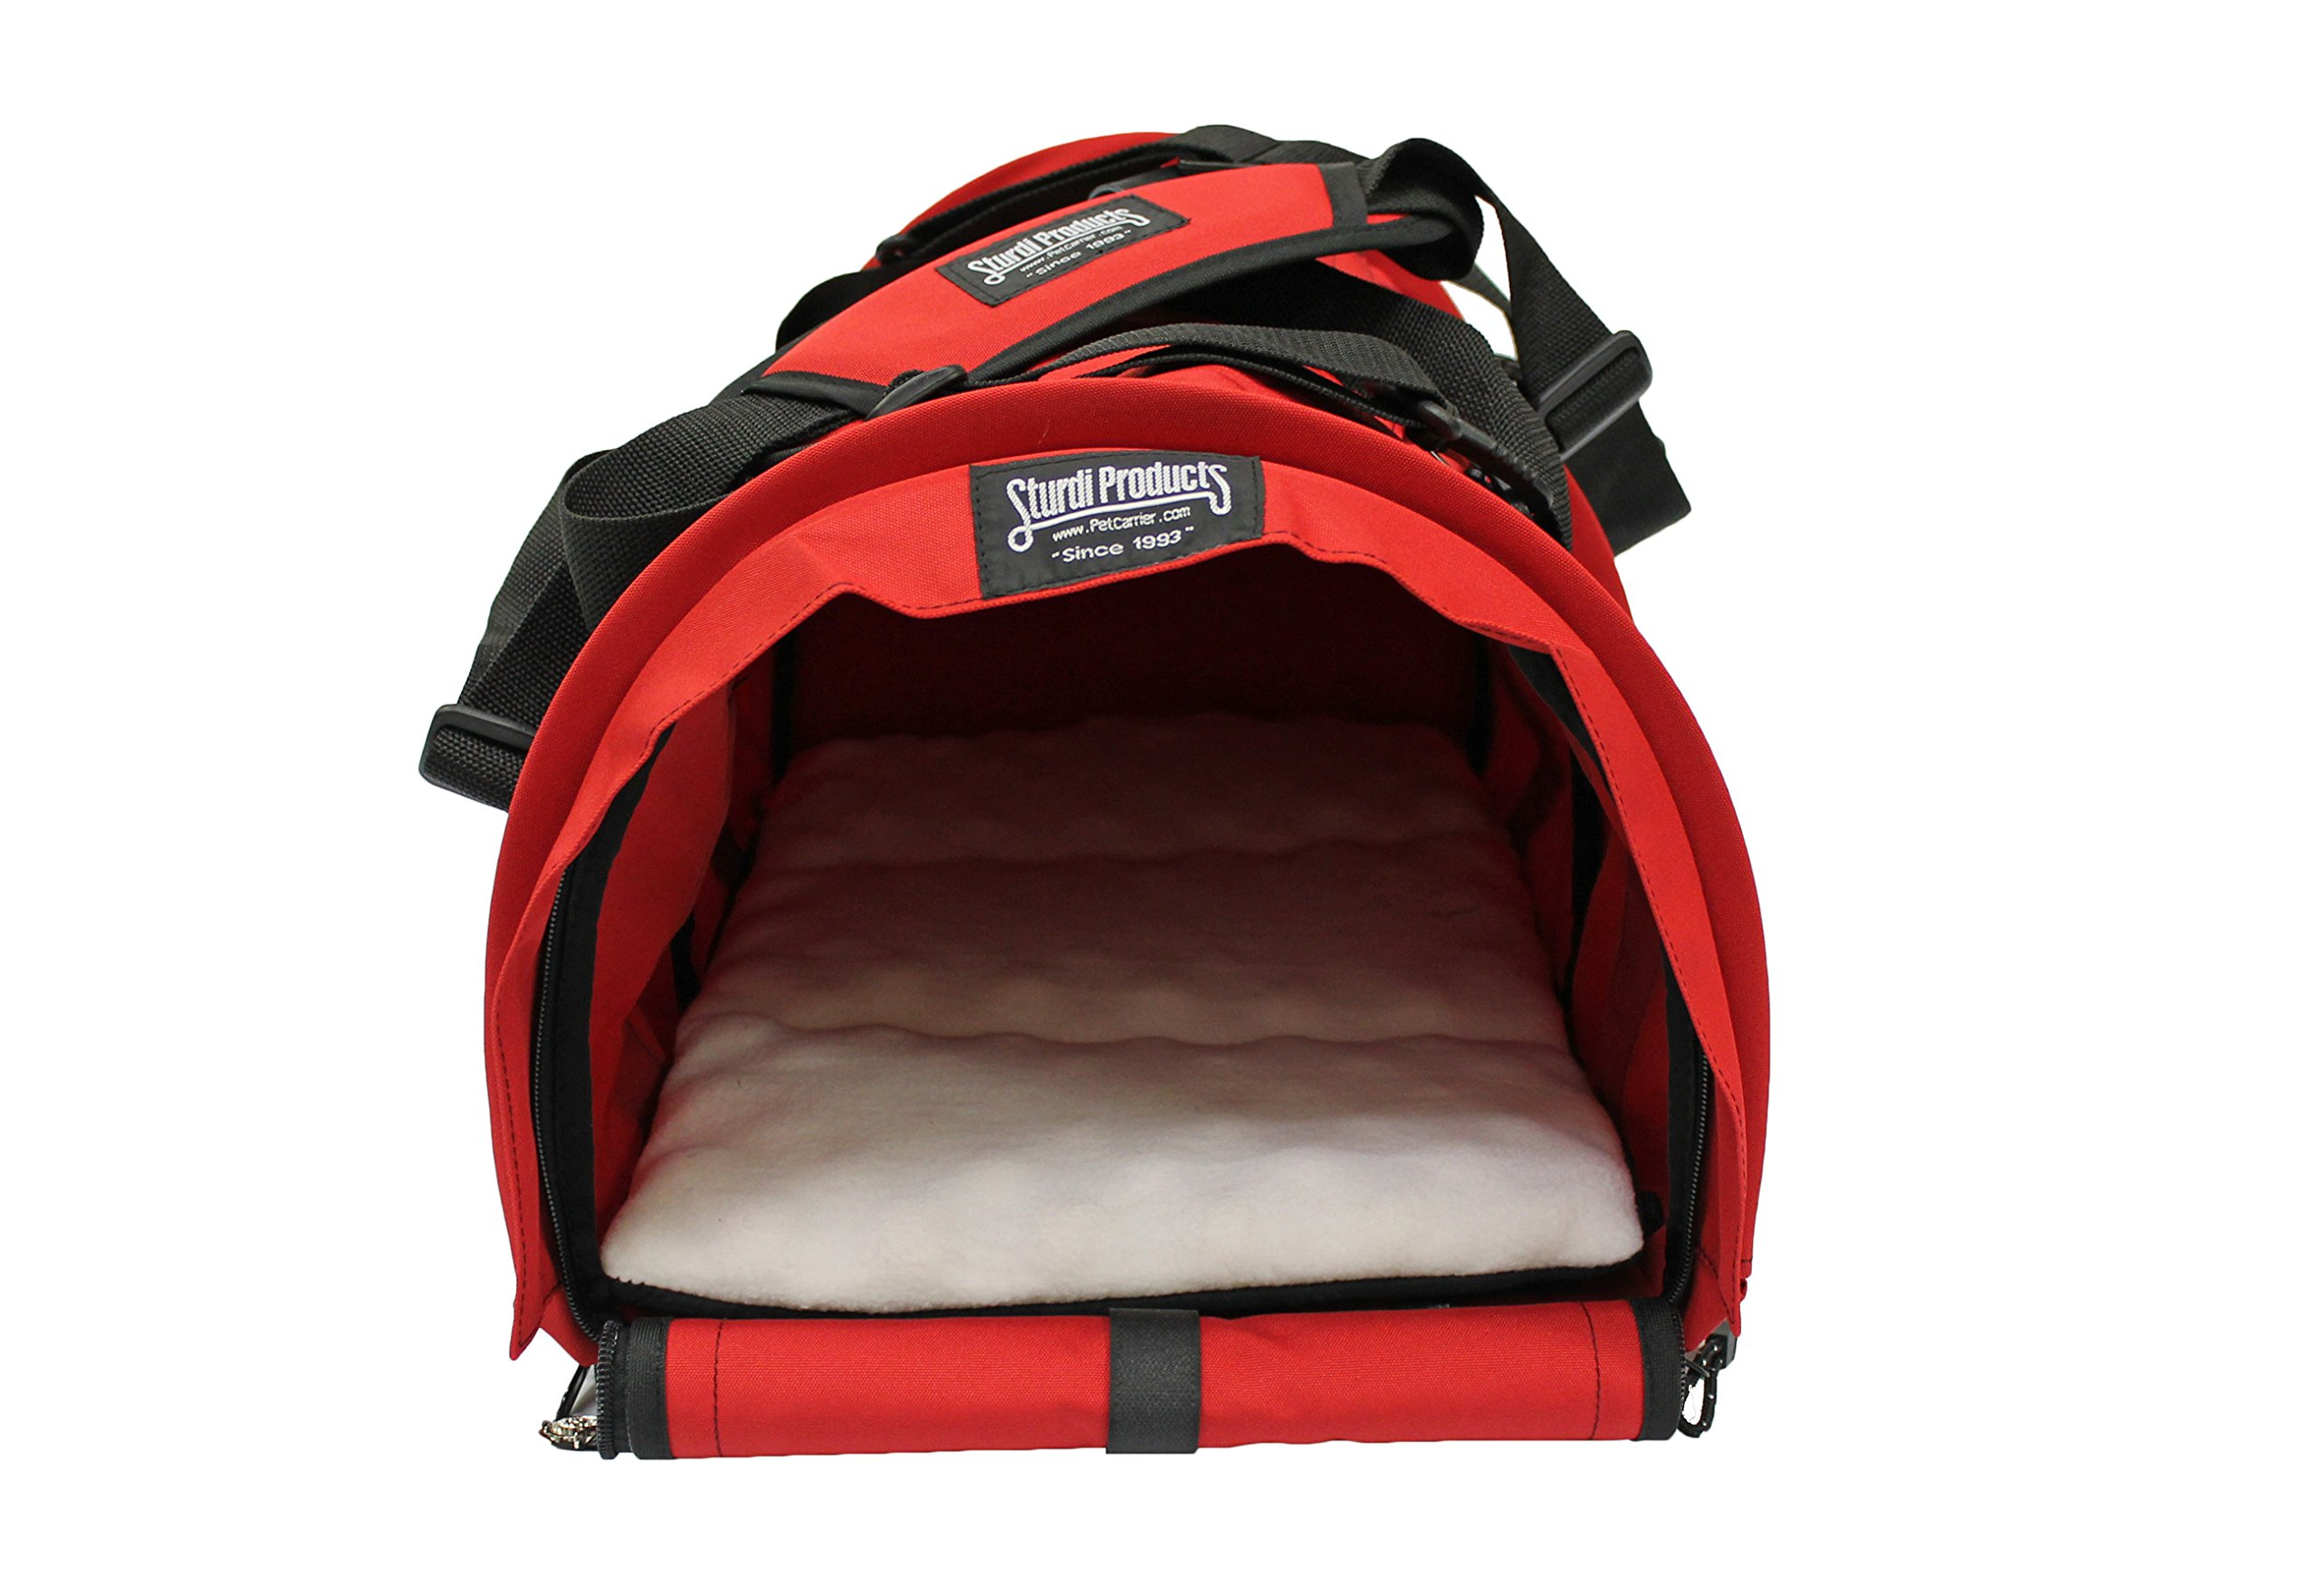 Sturdi Products Pet Carrier, Large, Red by STURDI PRODUCTS